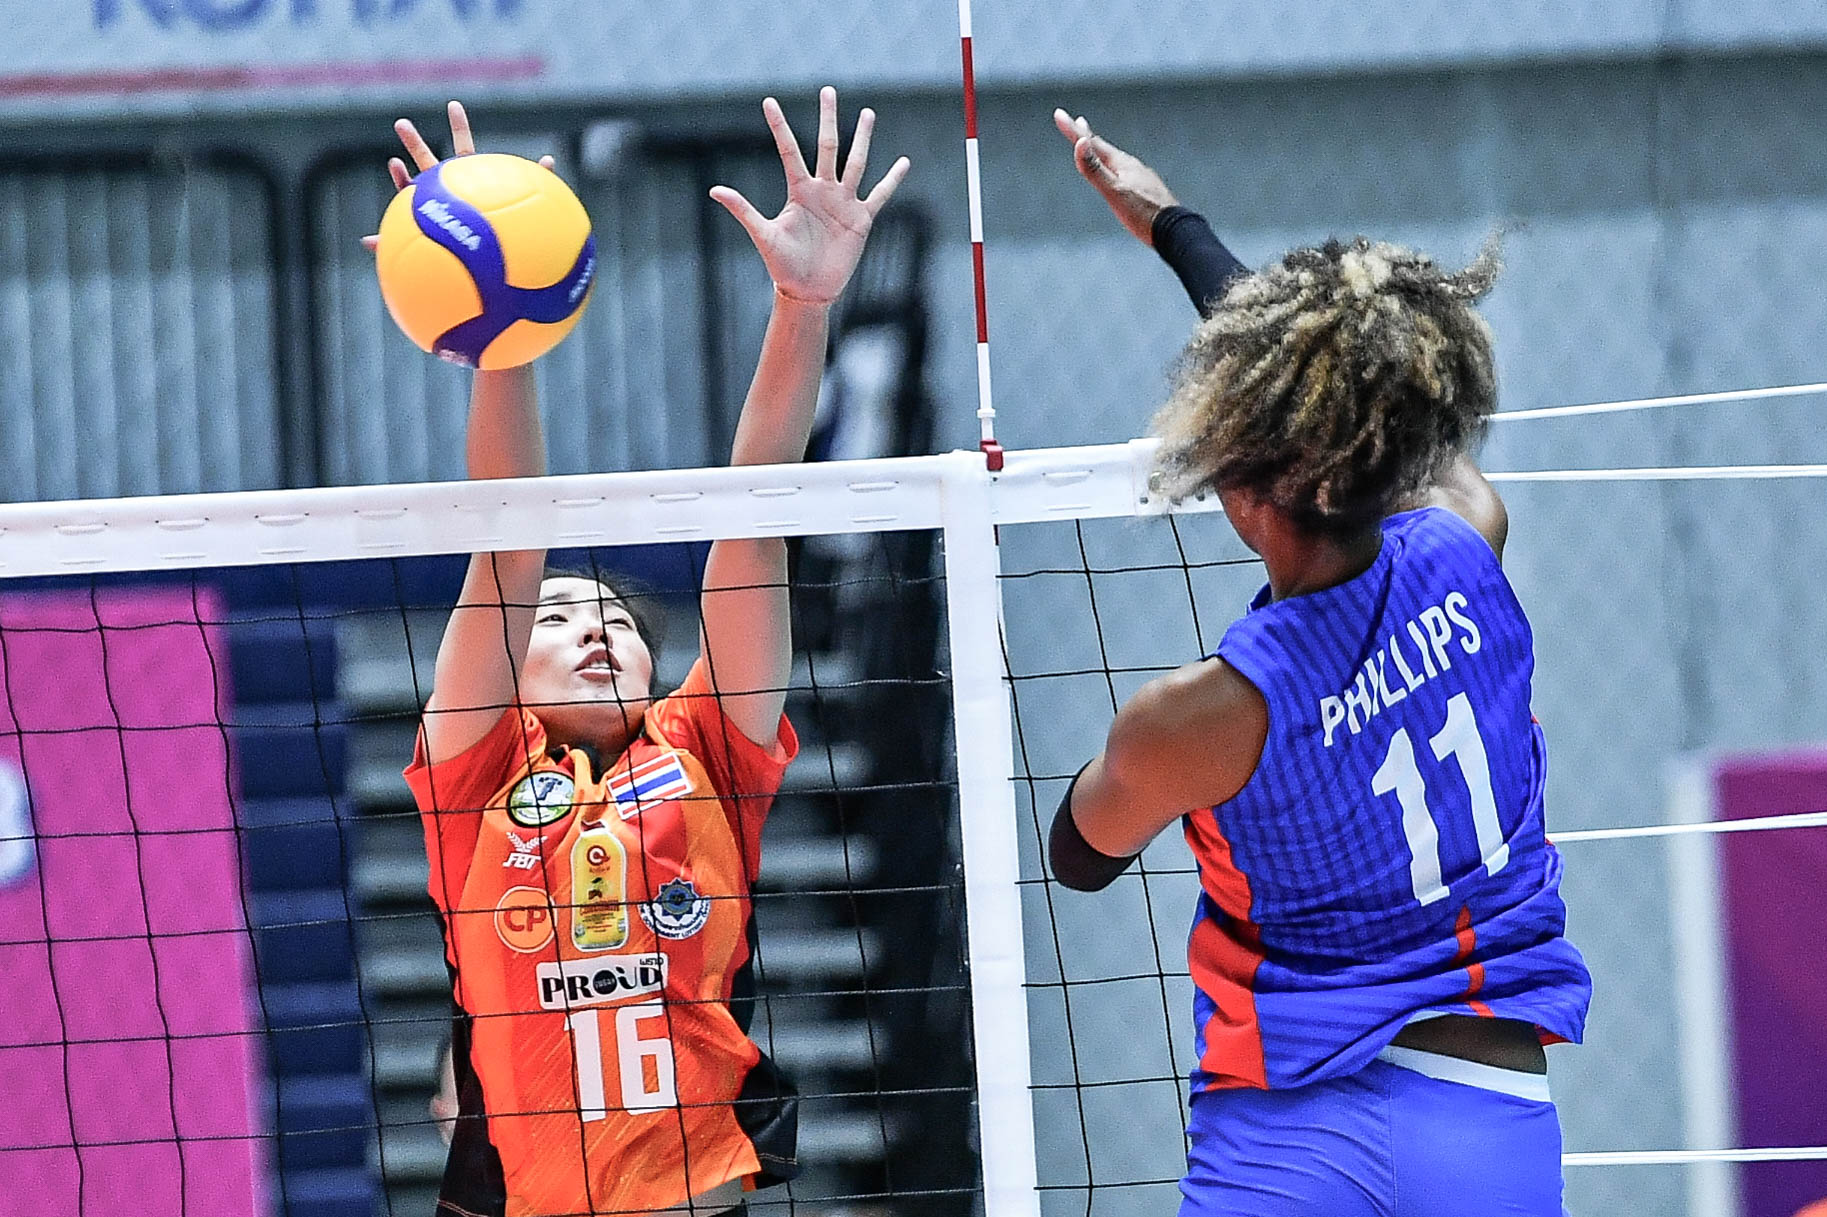 MJ Philips of the PH team in action at the 21st Asian Women's Club Volleyball Championship  [Asian Volleyball Confederation | Eddy Phongphakthana]